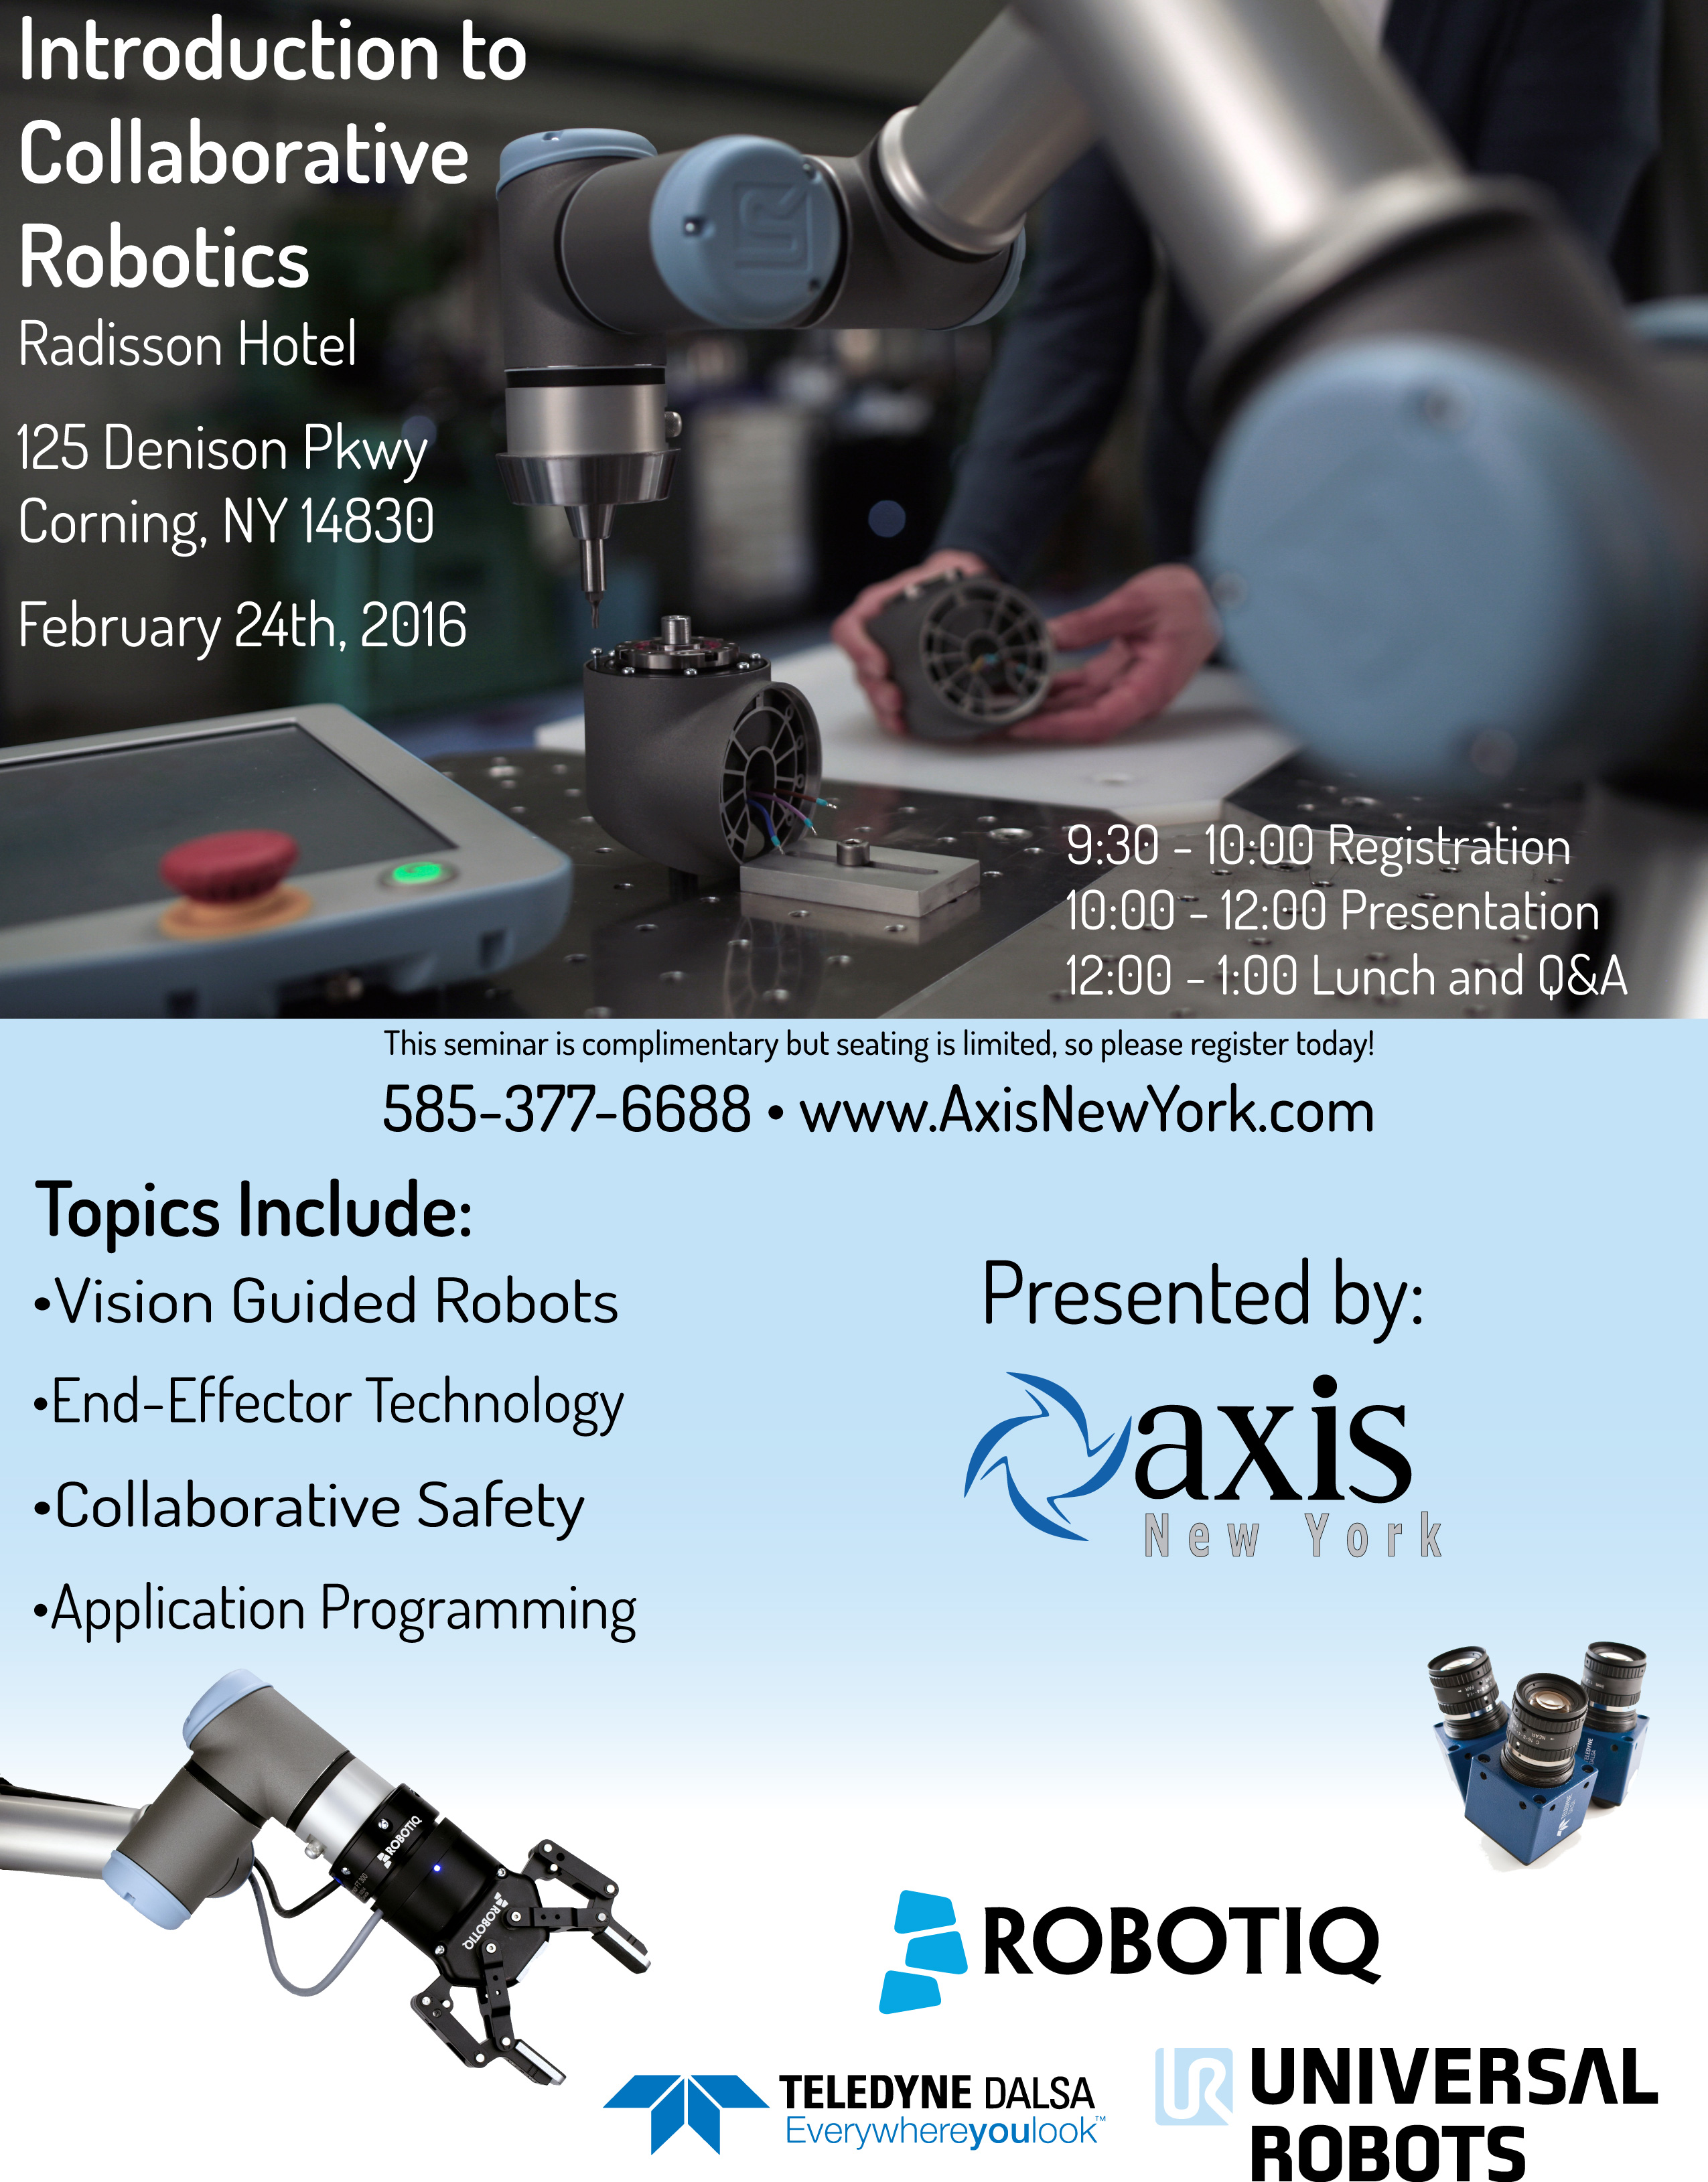 1492 187 492 How to Detect an Object with Robotiq Grippers /how-to